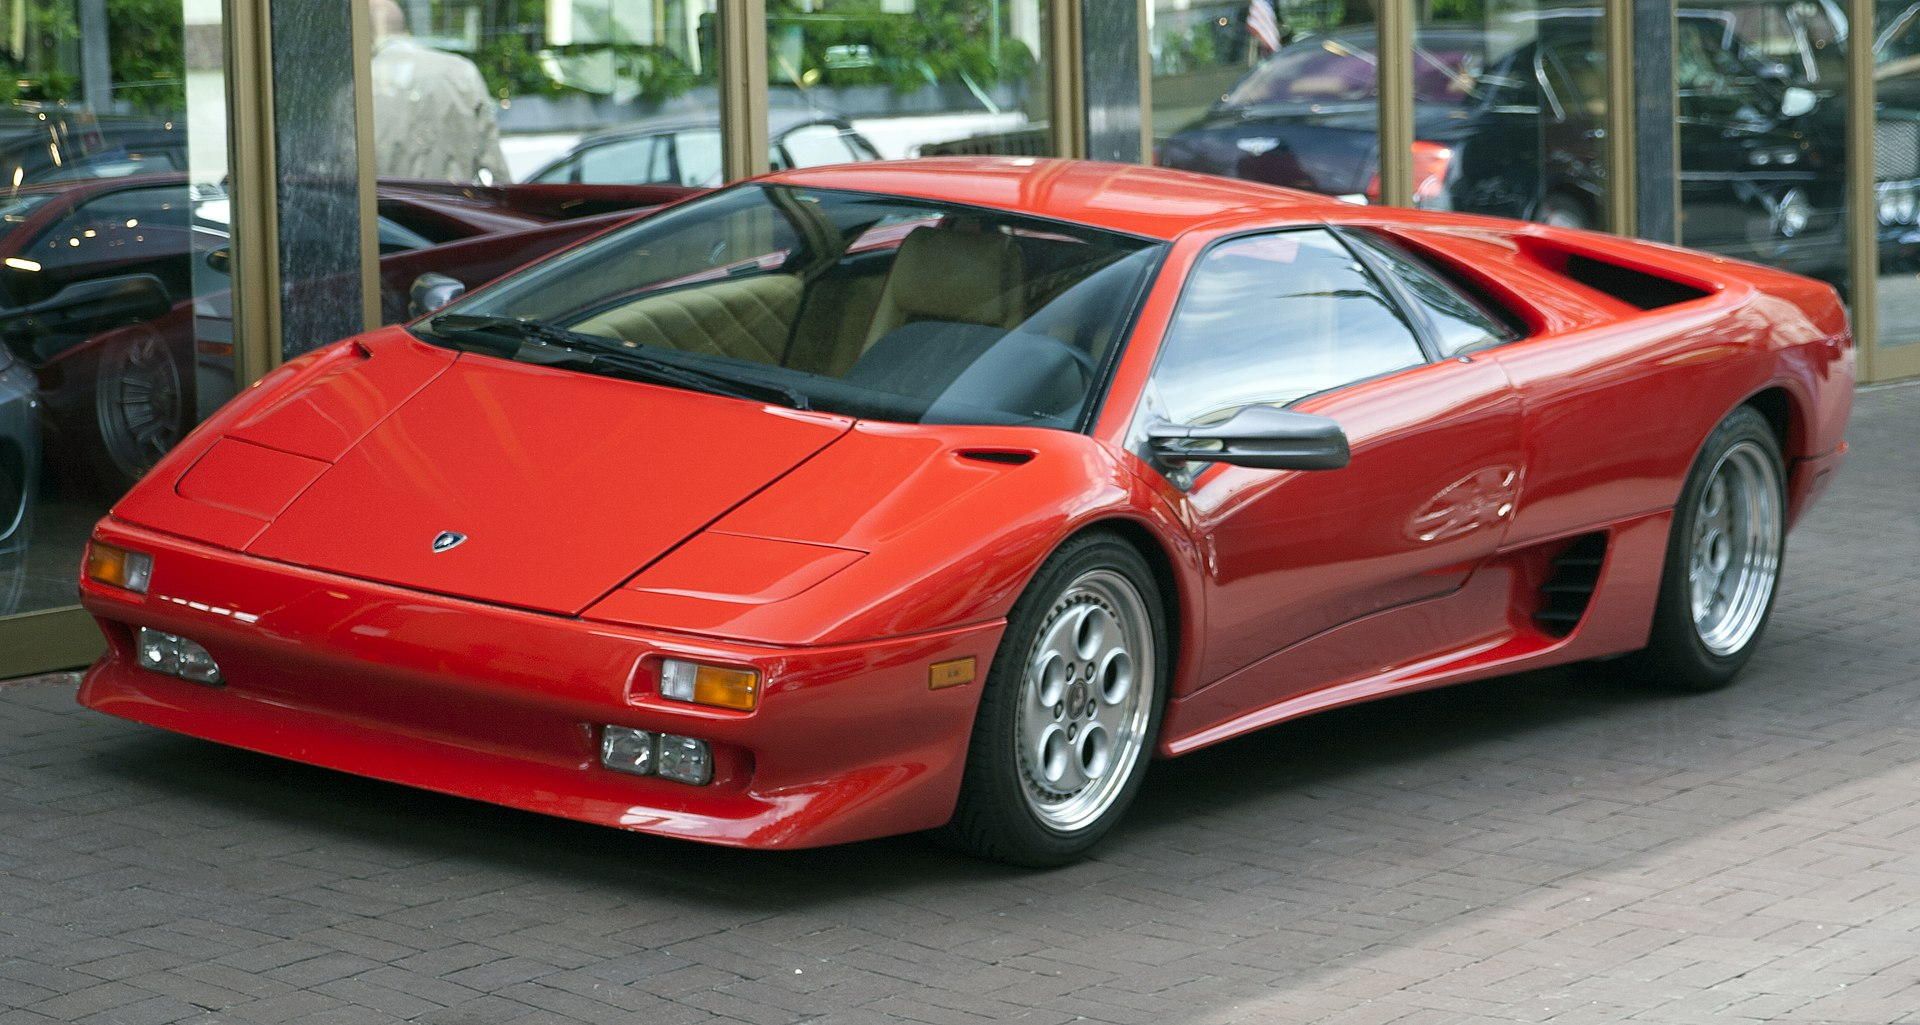 Five Of The Best Sports Cars From 1990 2000 Blog Mcg Social Myclassicgarage